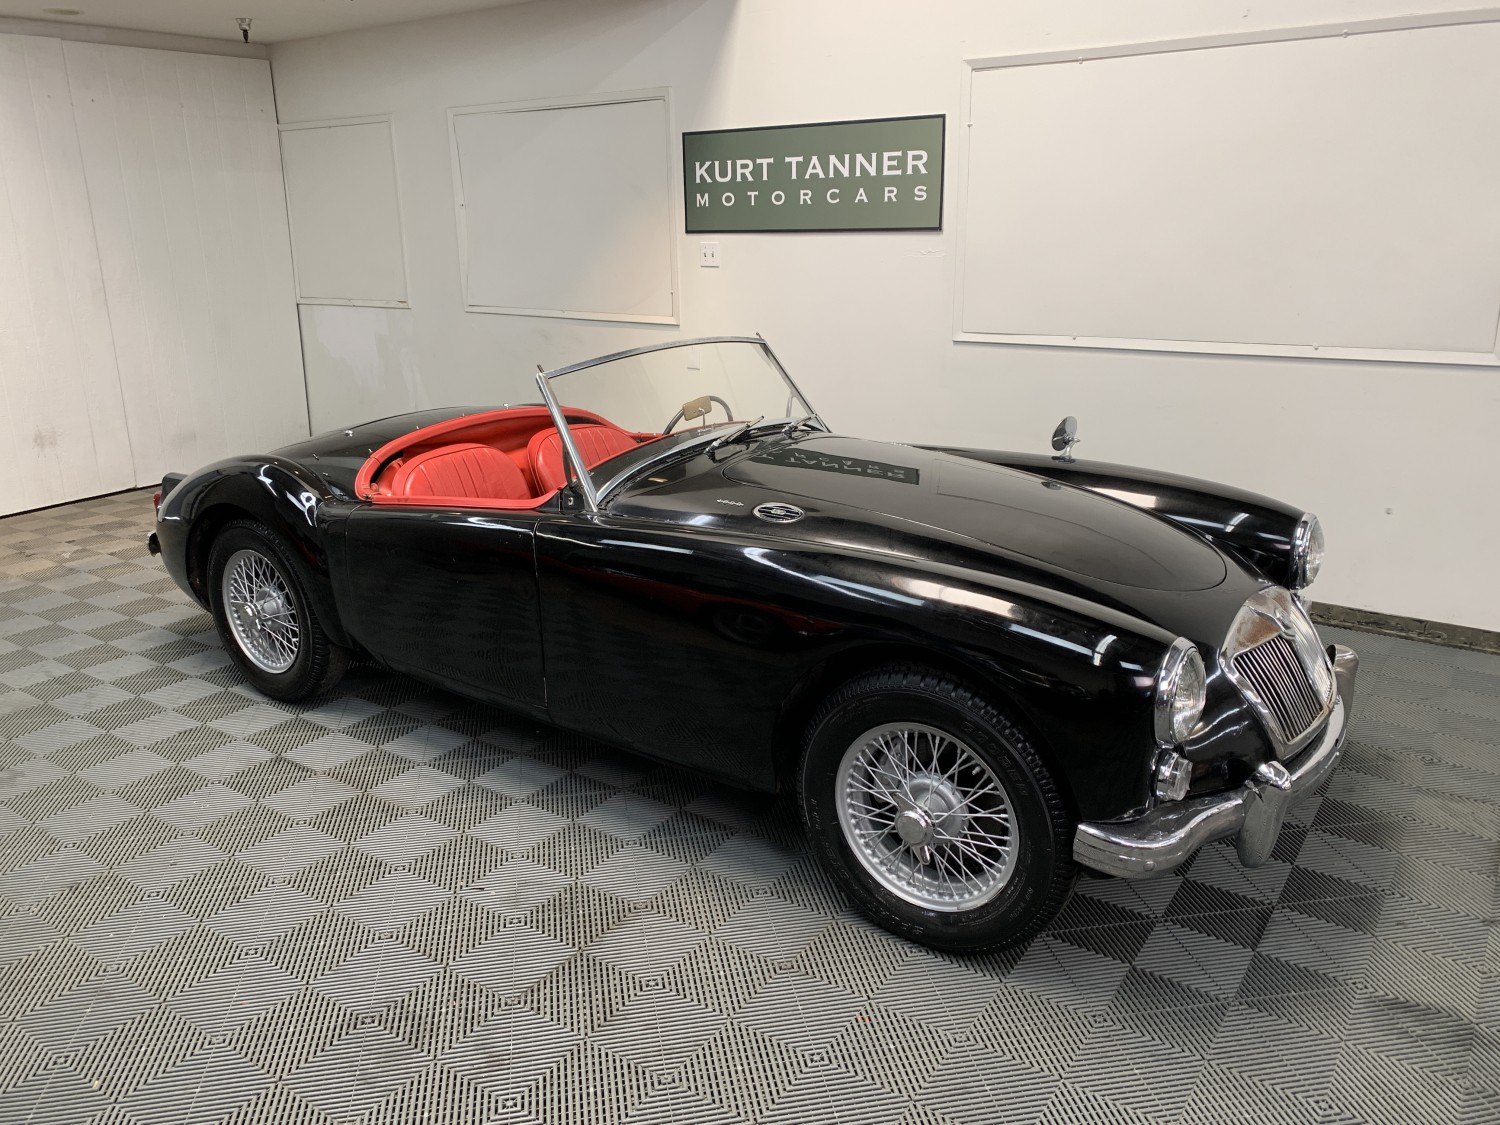 1960 MGA 1600 MK1 ROADSTER. BLACK WITH RED TRIM. BLACK TOP, GRAY TONNEAU AND SIDESCREENS. 4-SPEED, WIRE WHEELS. SUPER, WELL-PRESERVED LARGELY ORIGINAL CAR. 62,519 BELIEVED ORIGINAL MILES. SUPER DRIVING CAR.